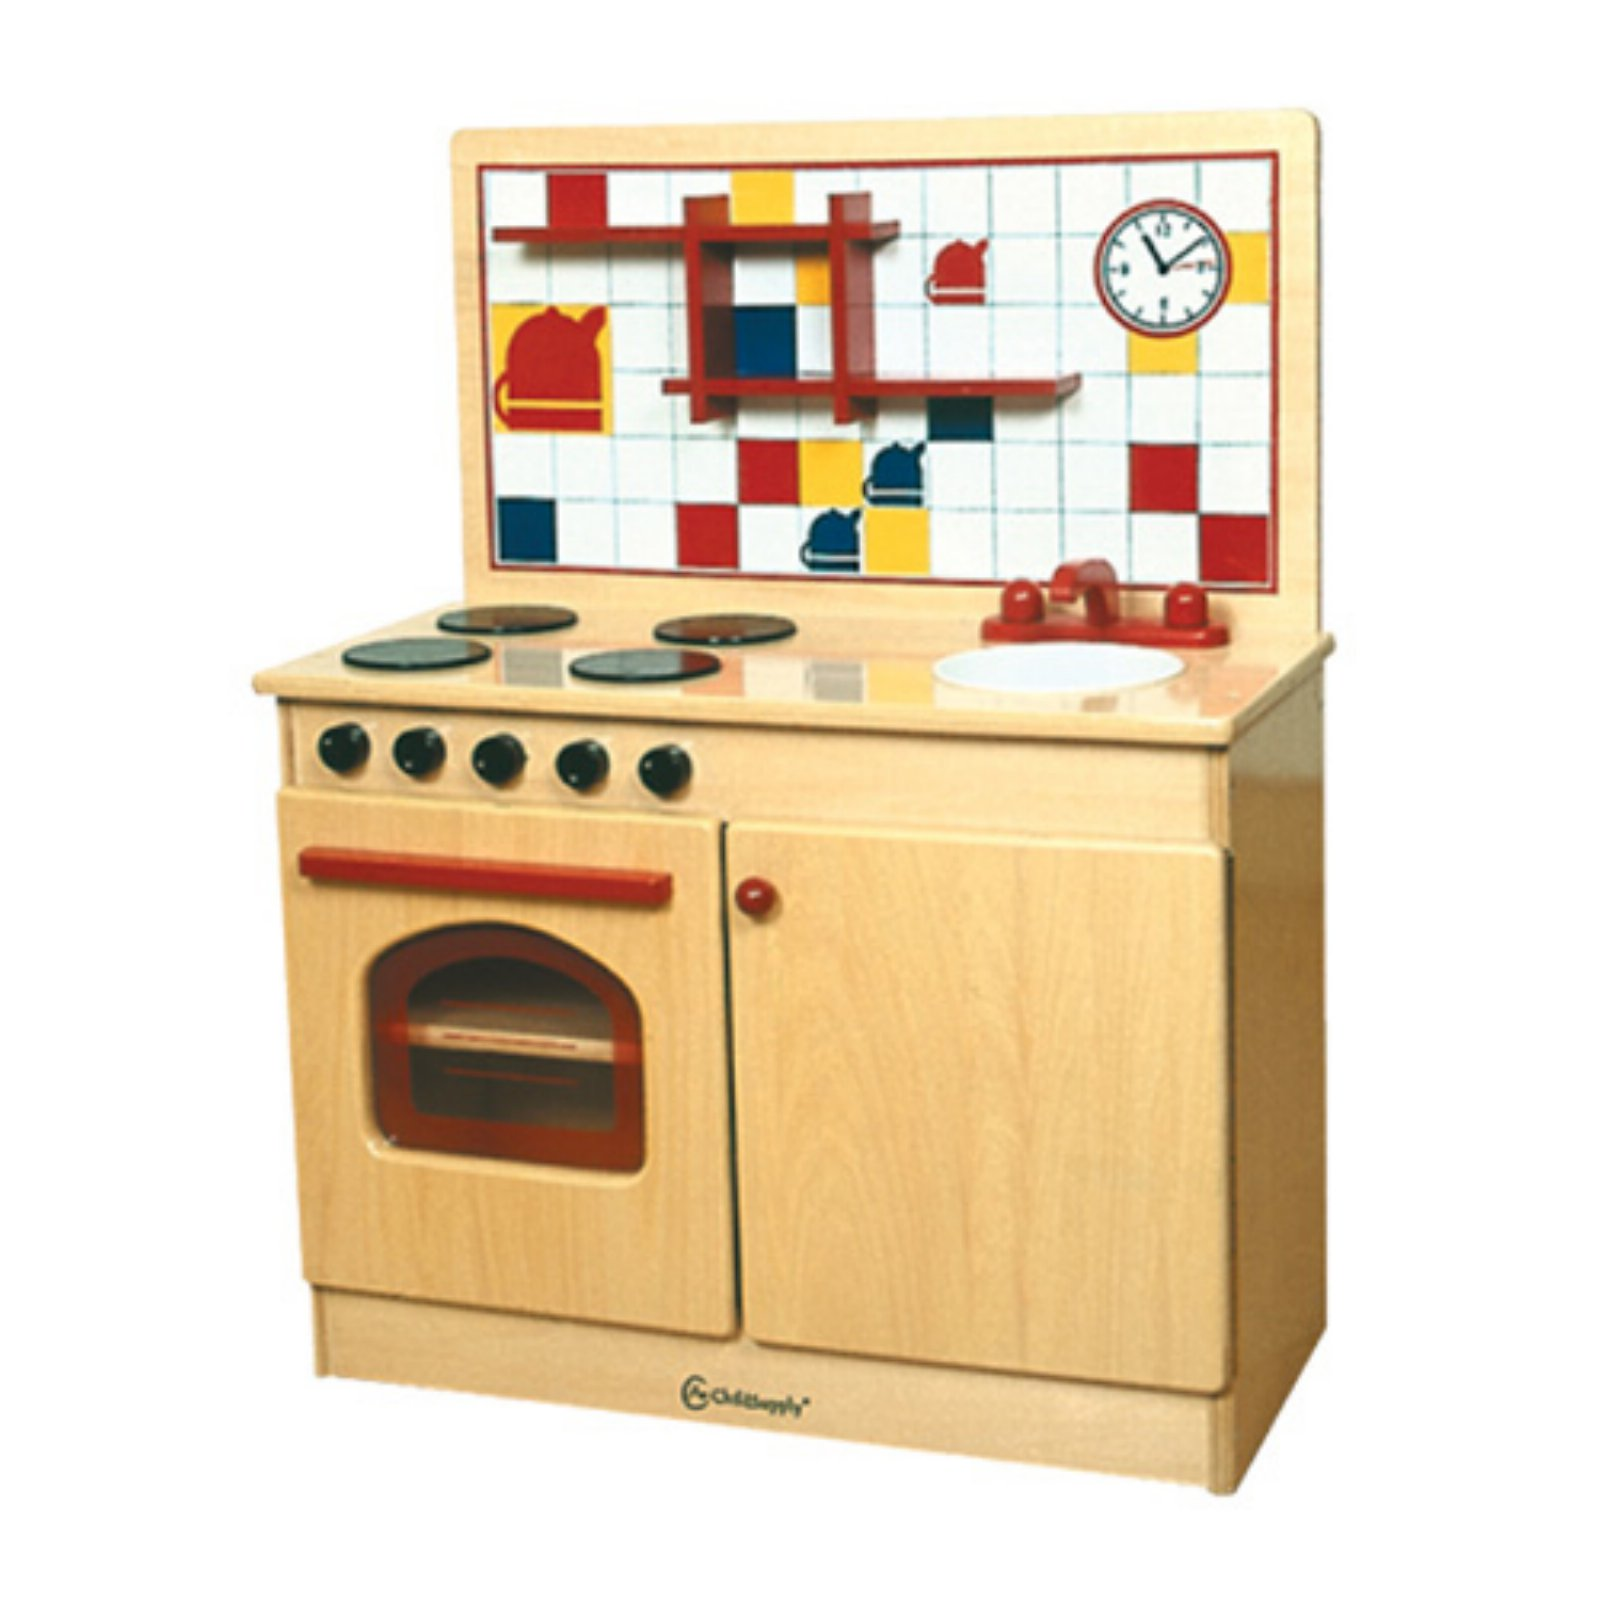 A+ Childsupply Toddler 3 in 1 Play Kitchen